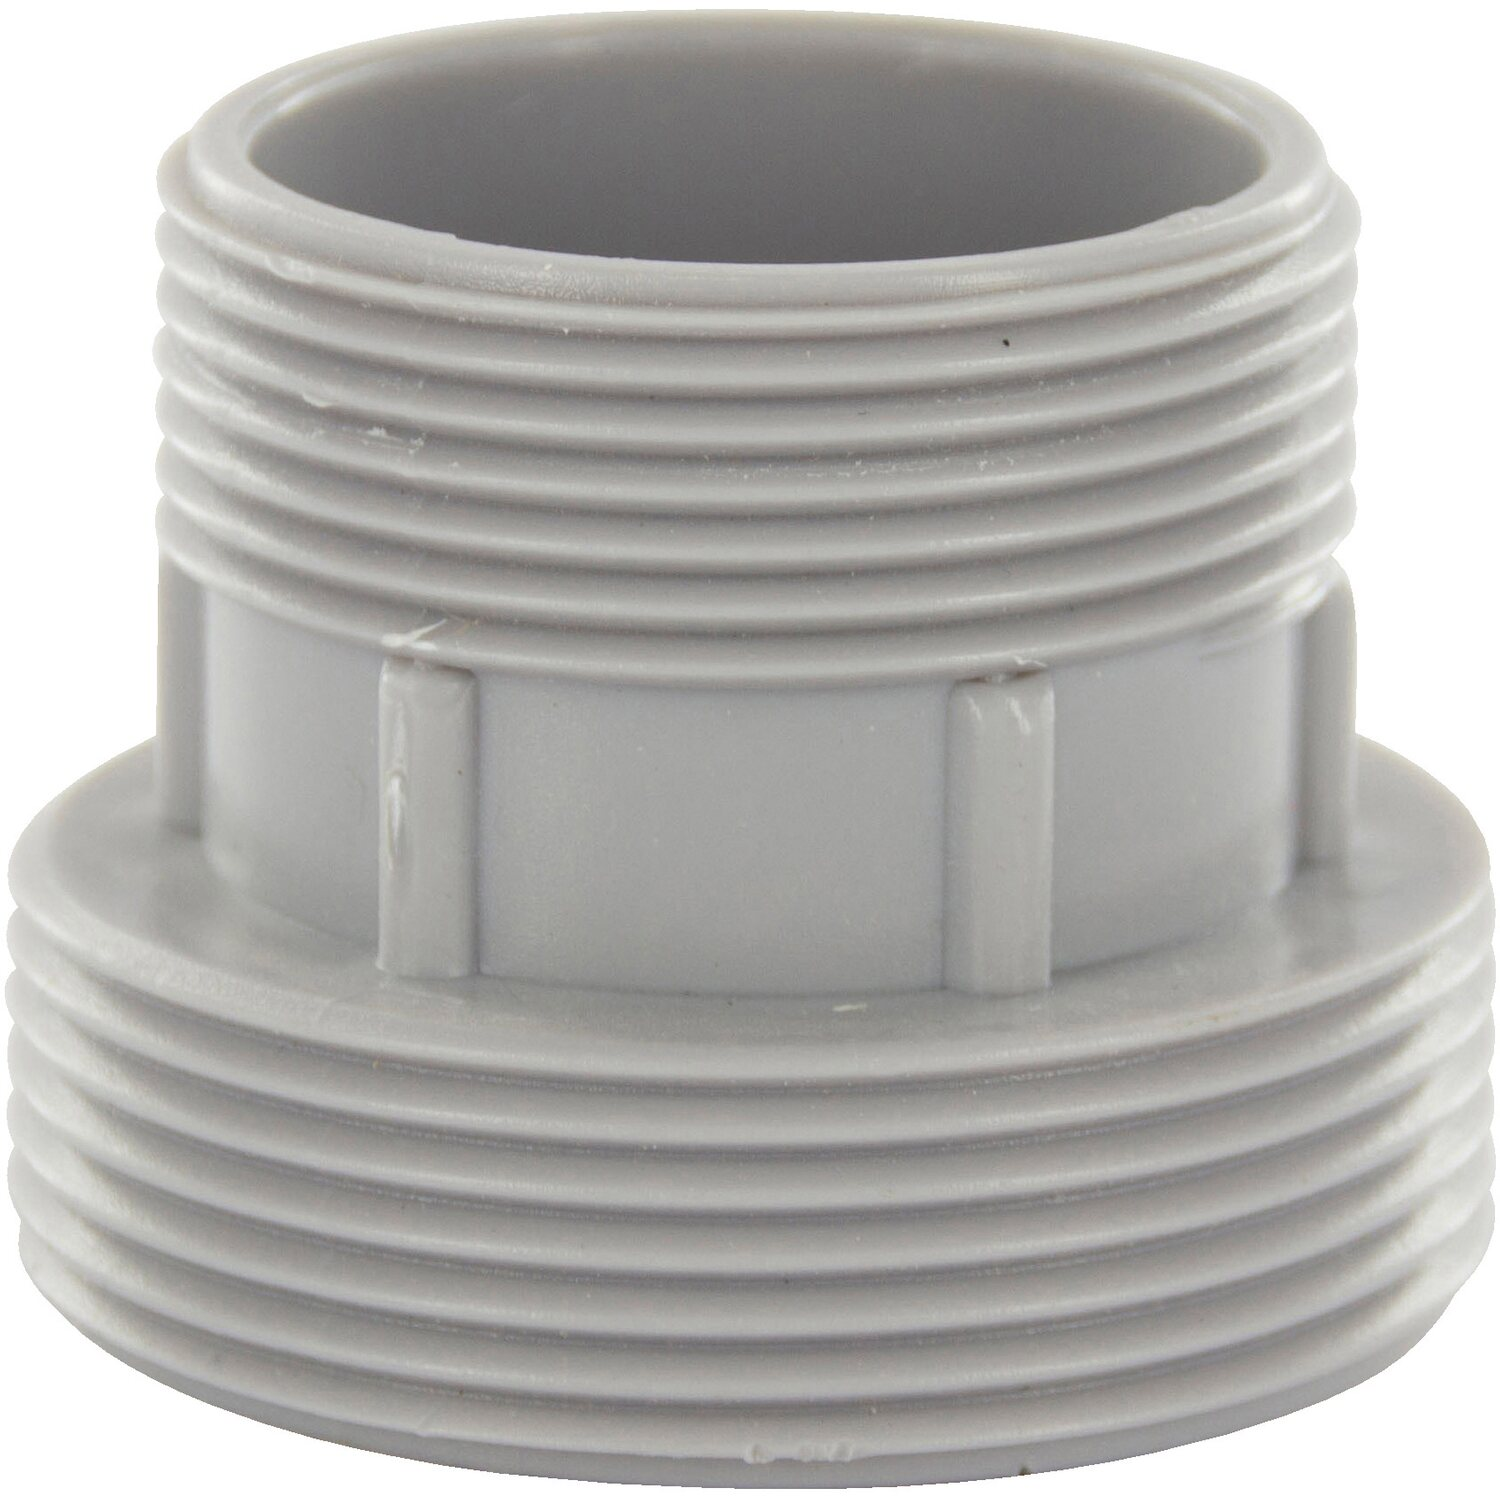 Intex adapter f r intex pools f r 51 mm 2 auf 38 mm 1 for Obi sandfilteranlage pool